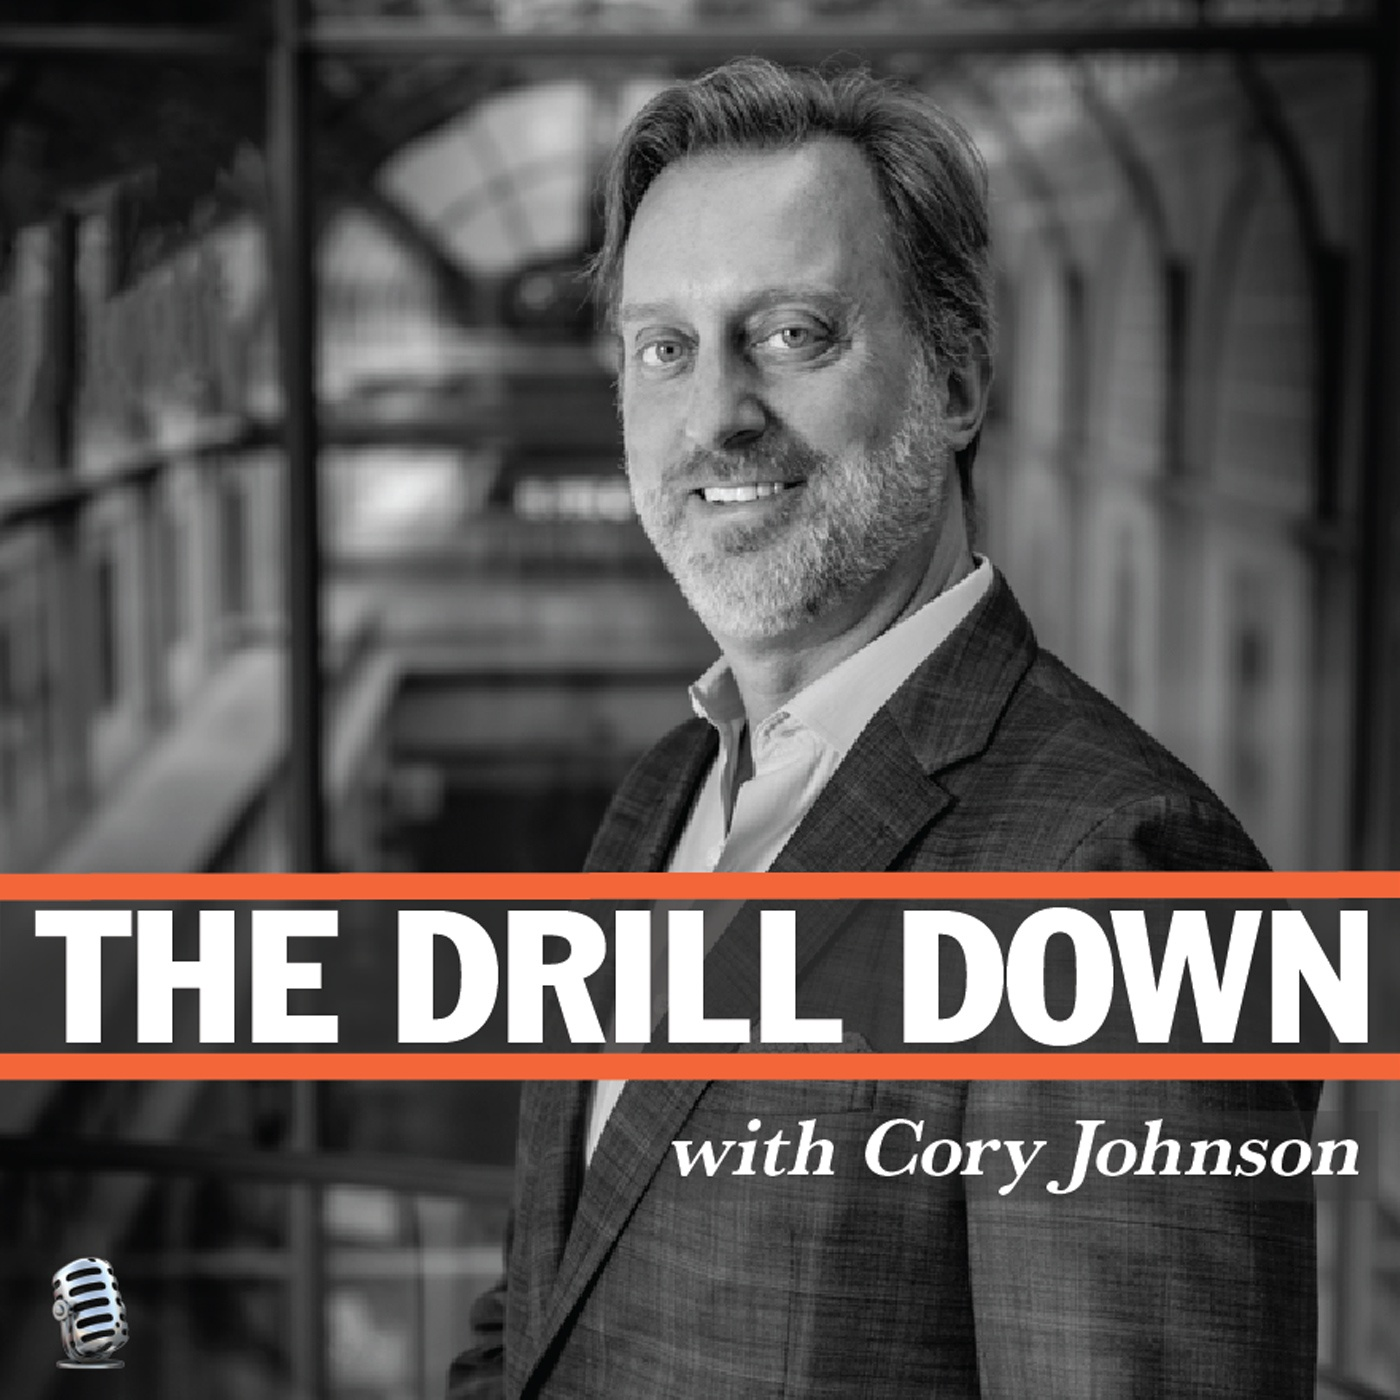 The Drill Down podcast